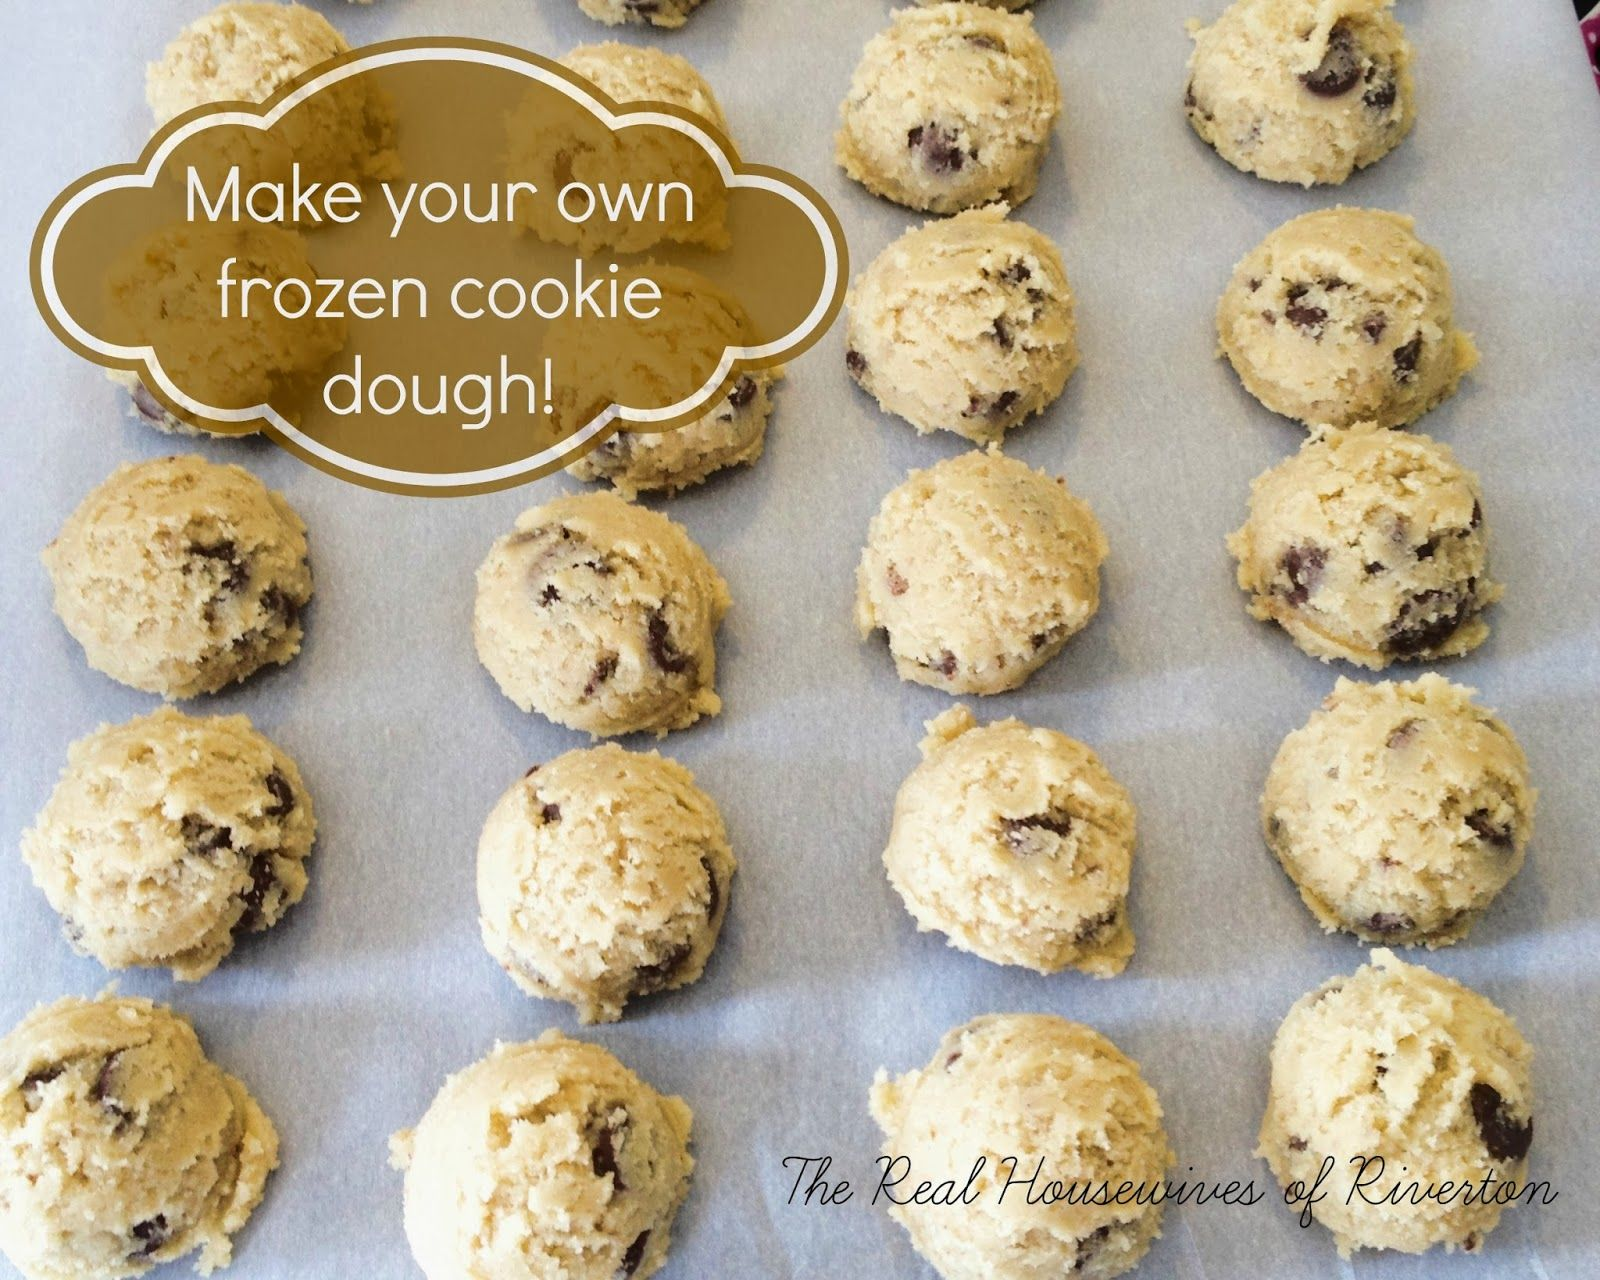 How To Make Your Own Frozen Chocolate Chip Cookie Dough